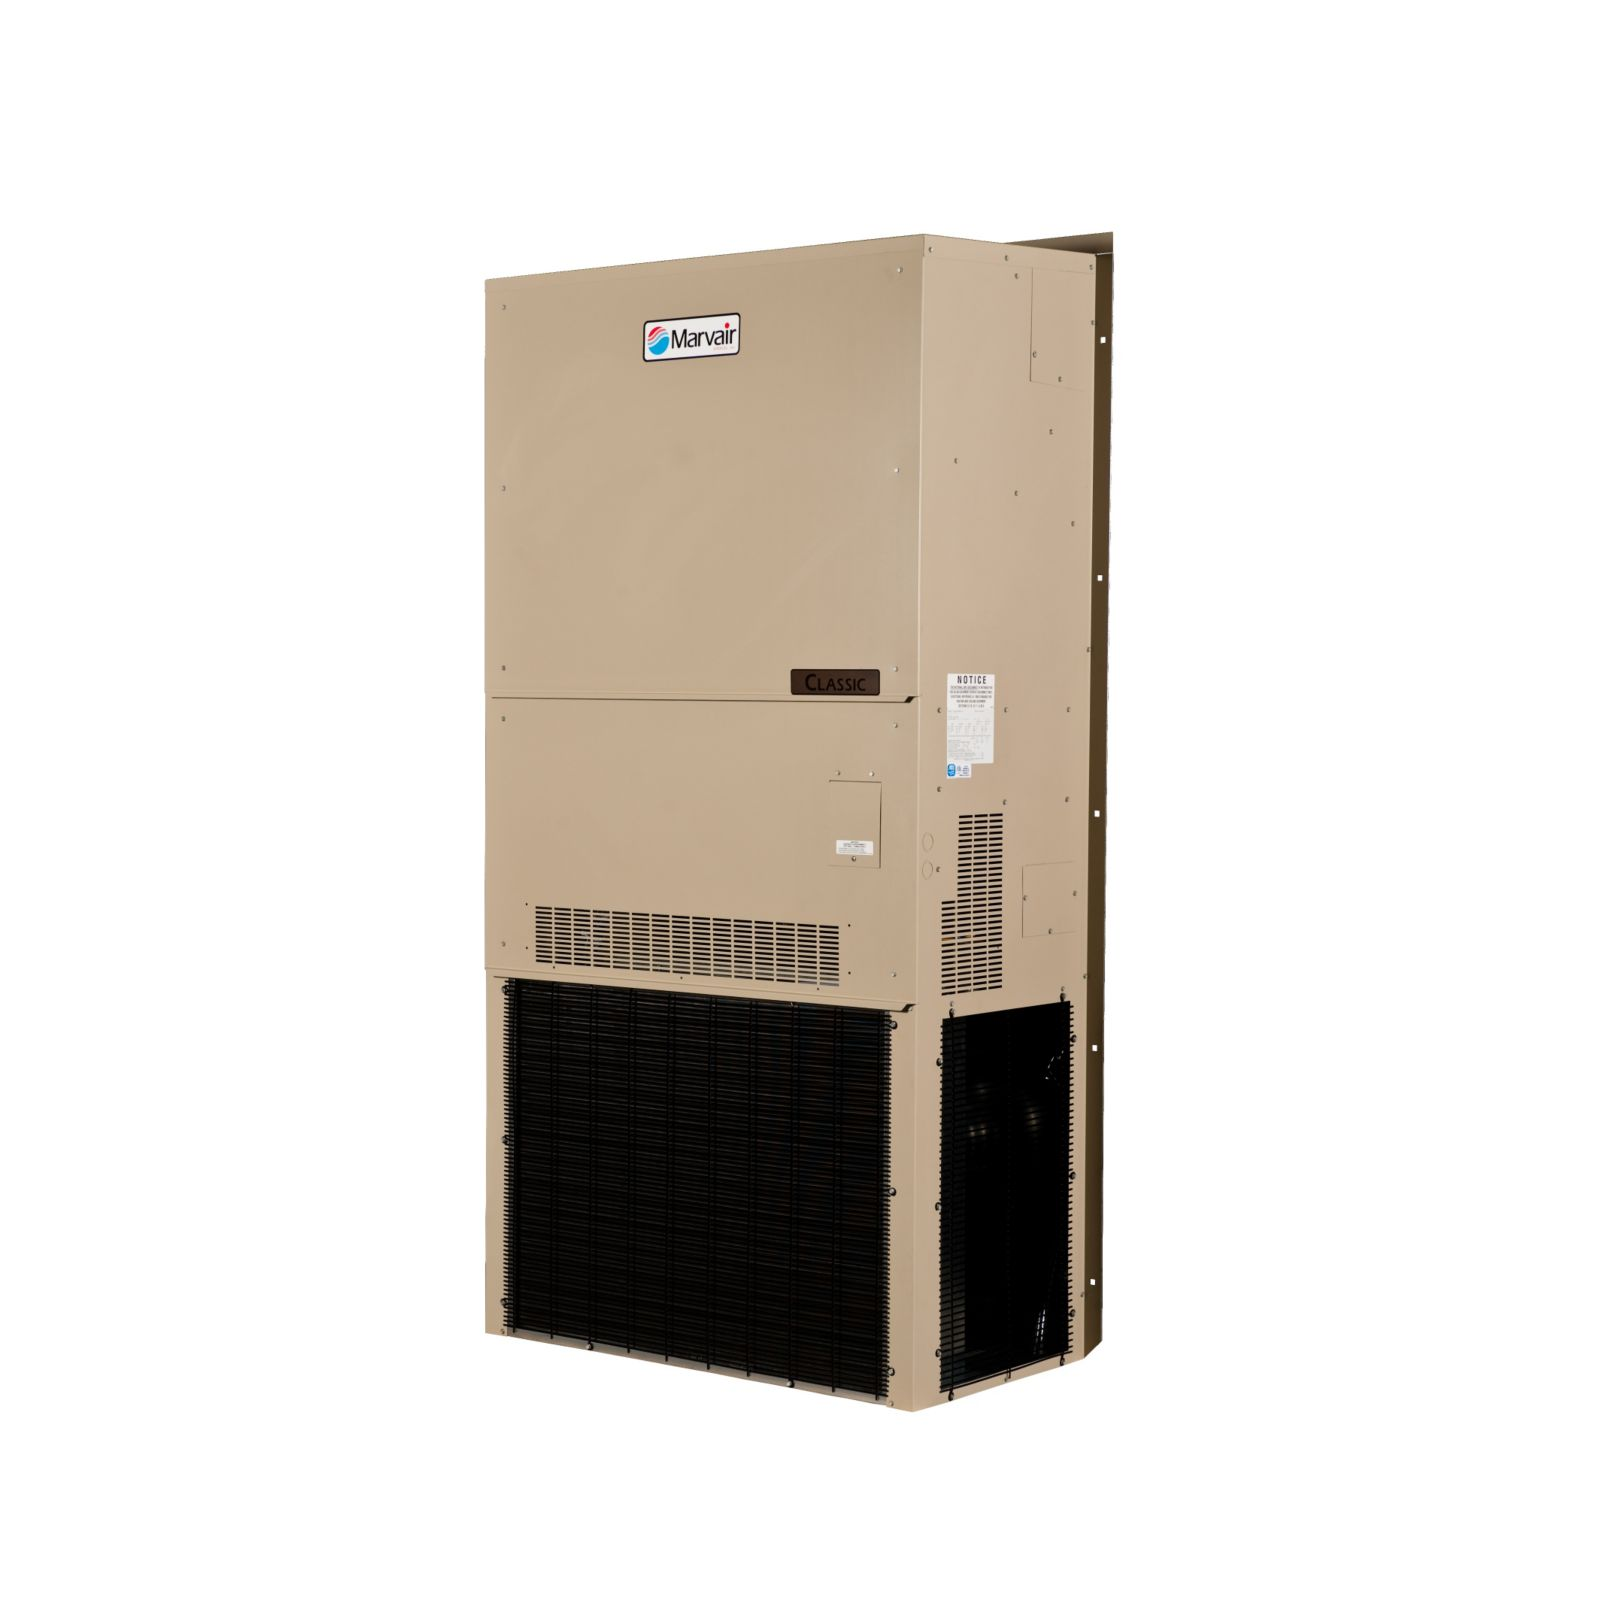 Marvair AVPA48ACA000MU-A2-100 - Wall Mount AC, ModPac, 4 Ton, 208-230/1, No Heat, Manual Damper, Scroll Compressor, R410A